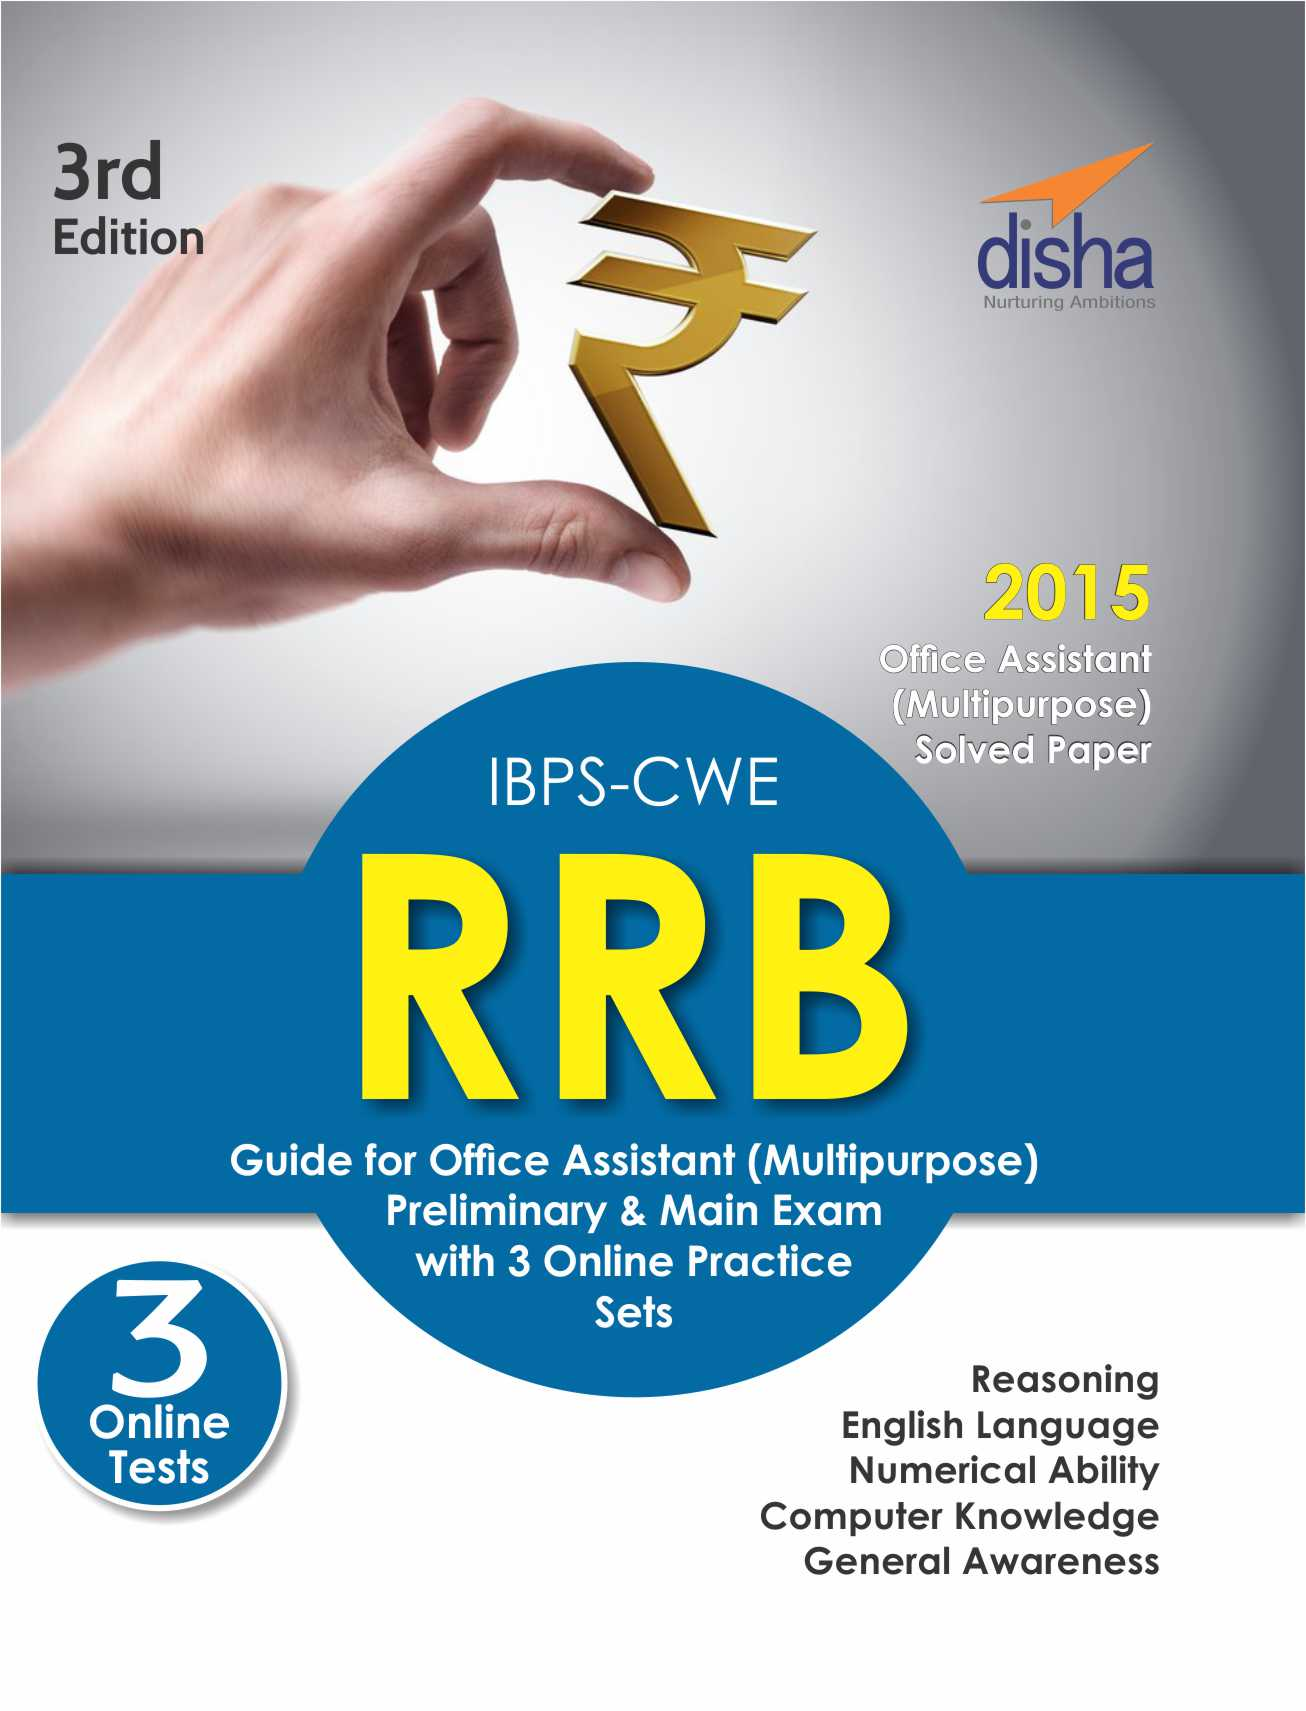 IBPS-CWE RRB Guide for Office Assistant Multipurpose Prelims and Mains Exam